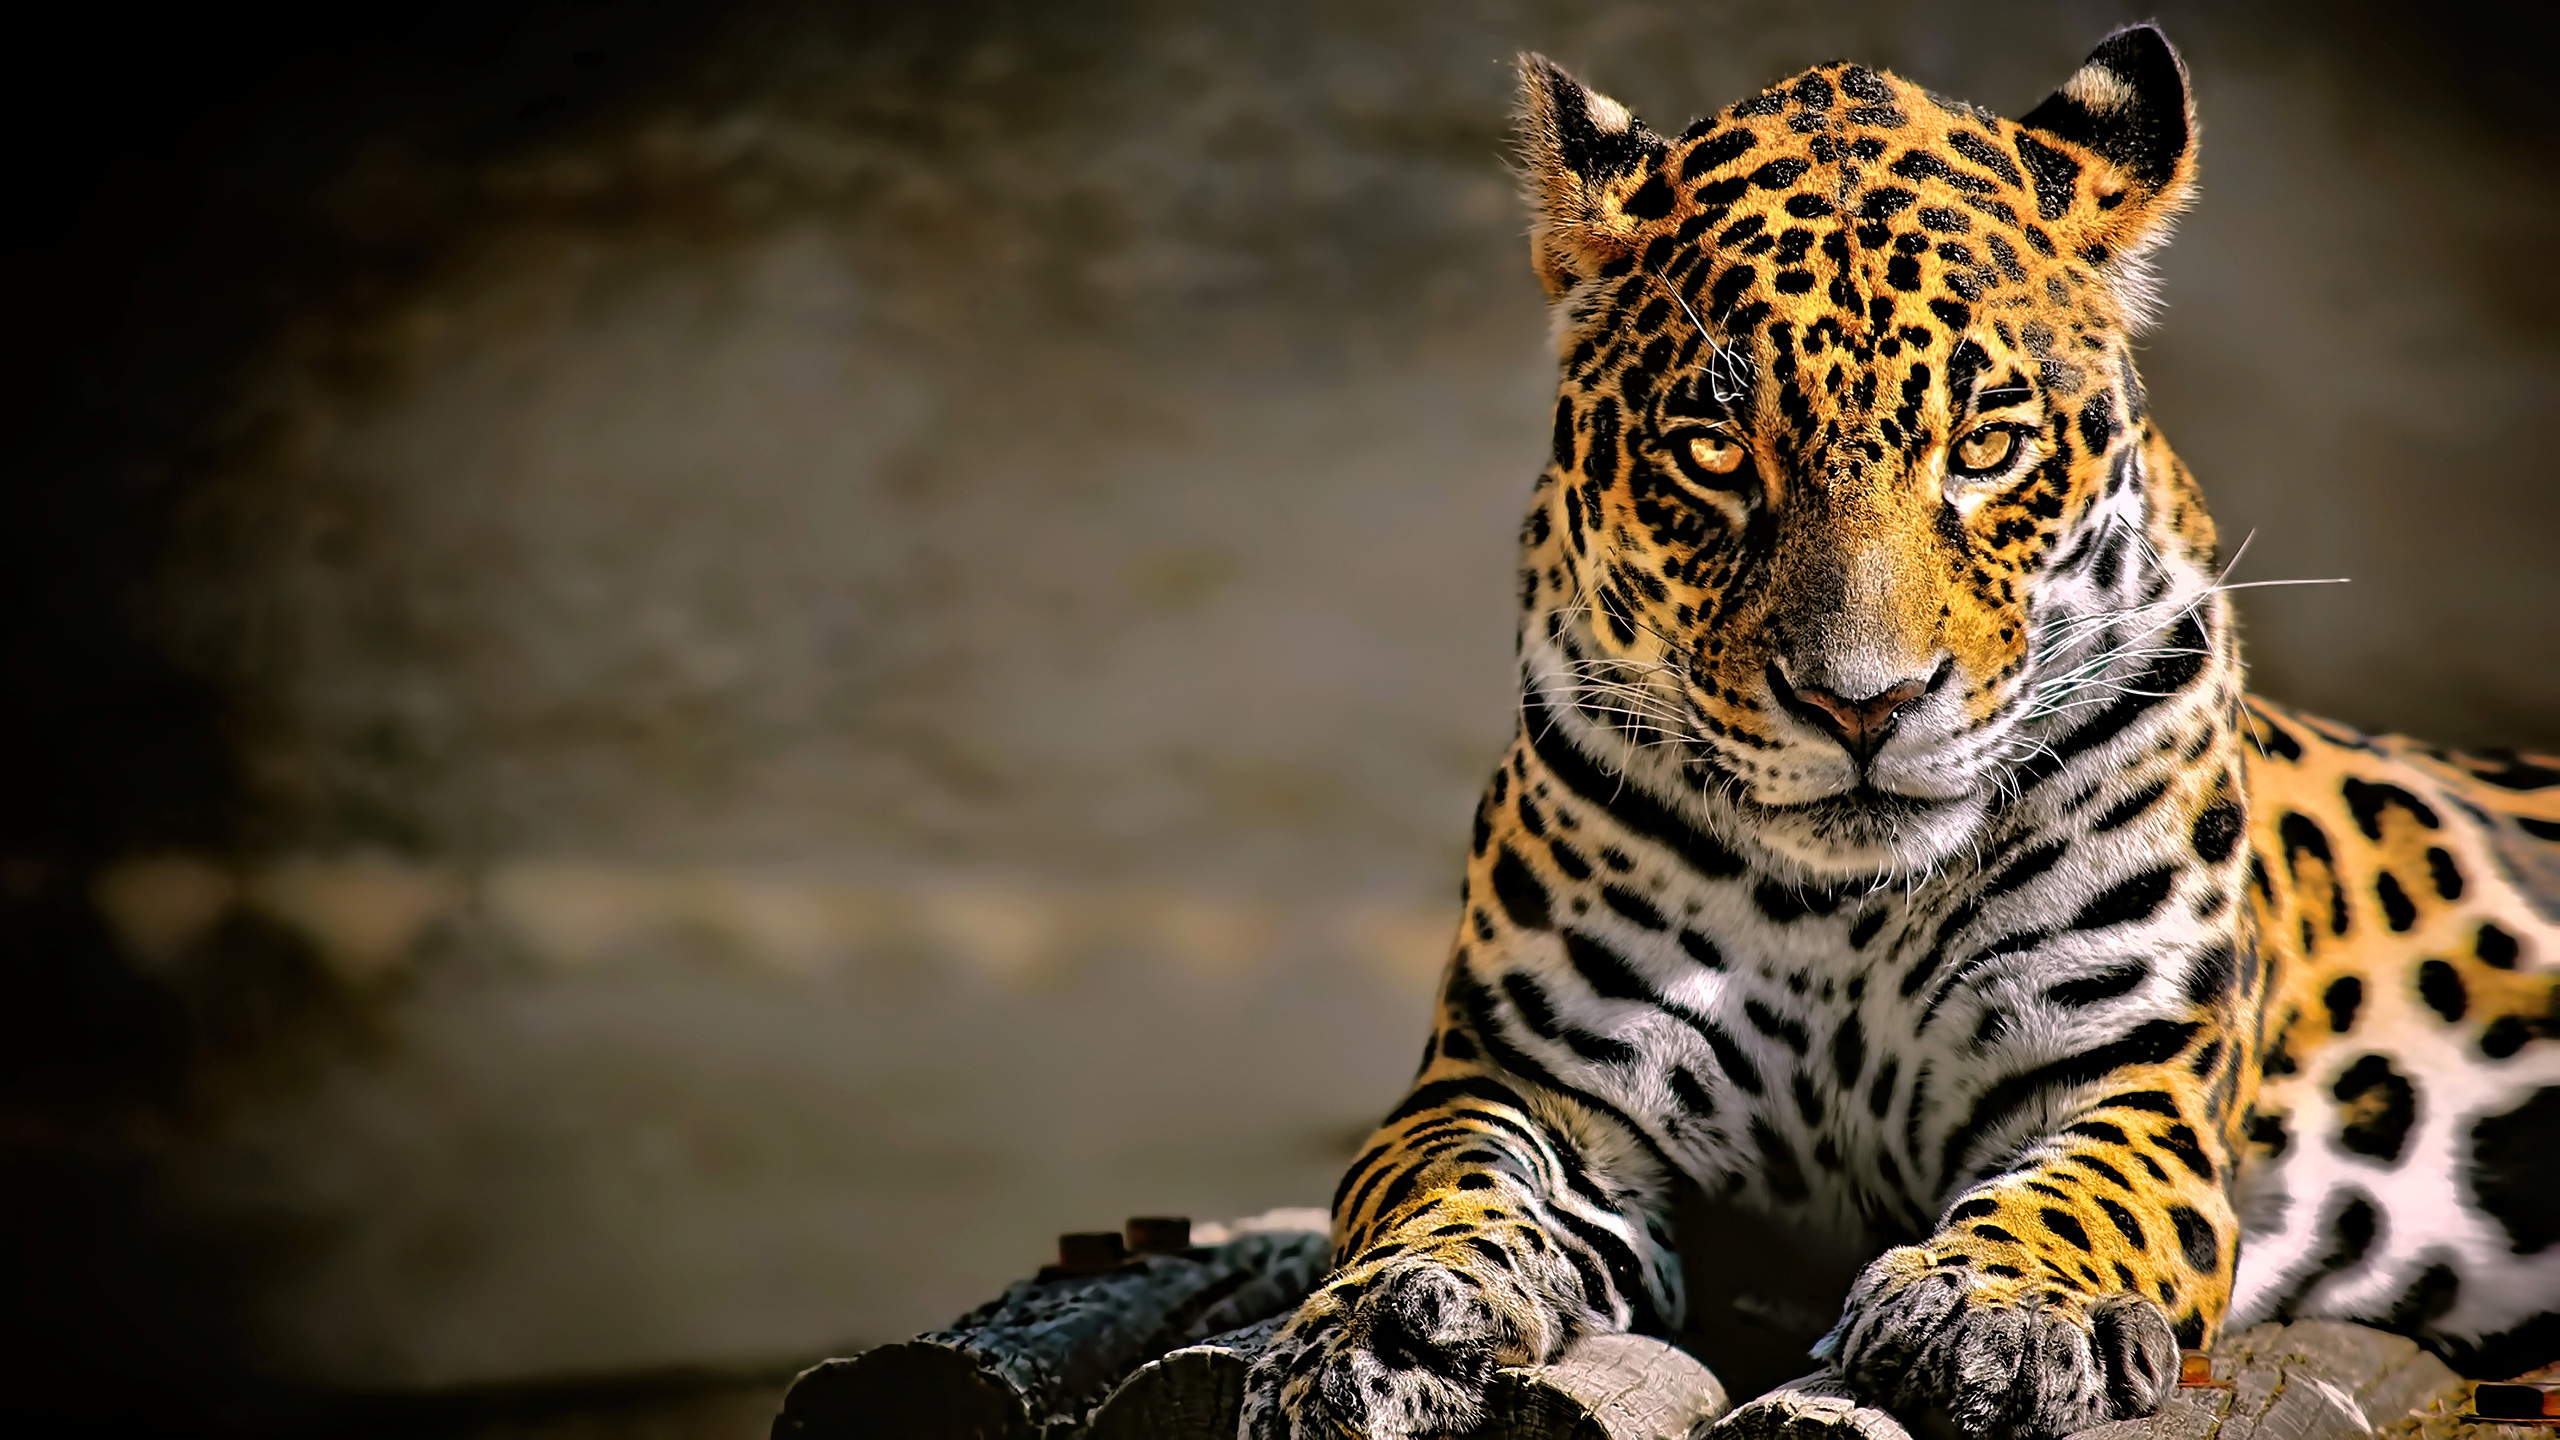 leopard-4k-glowing-eyes-kv.jpg